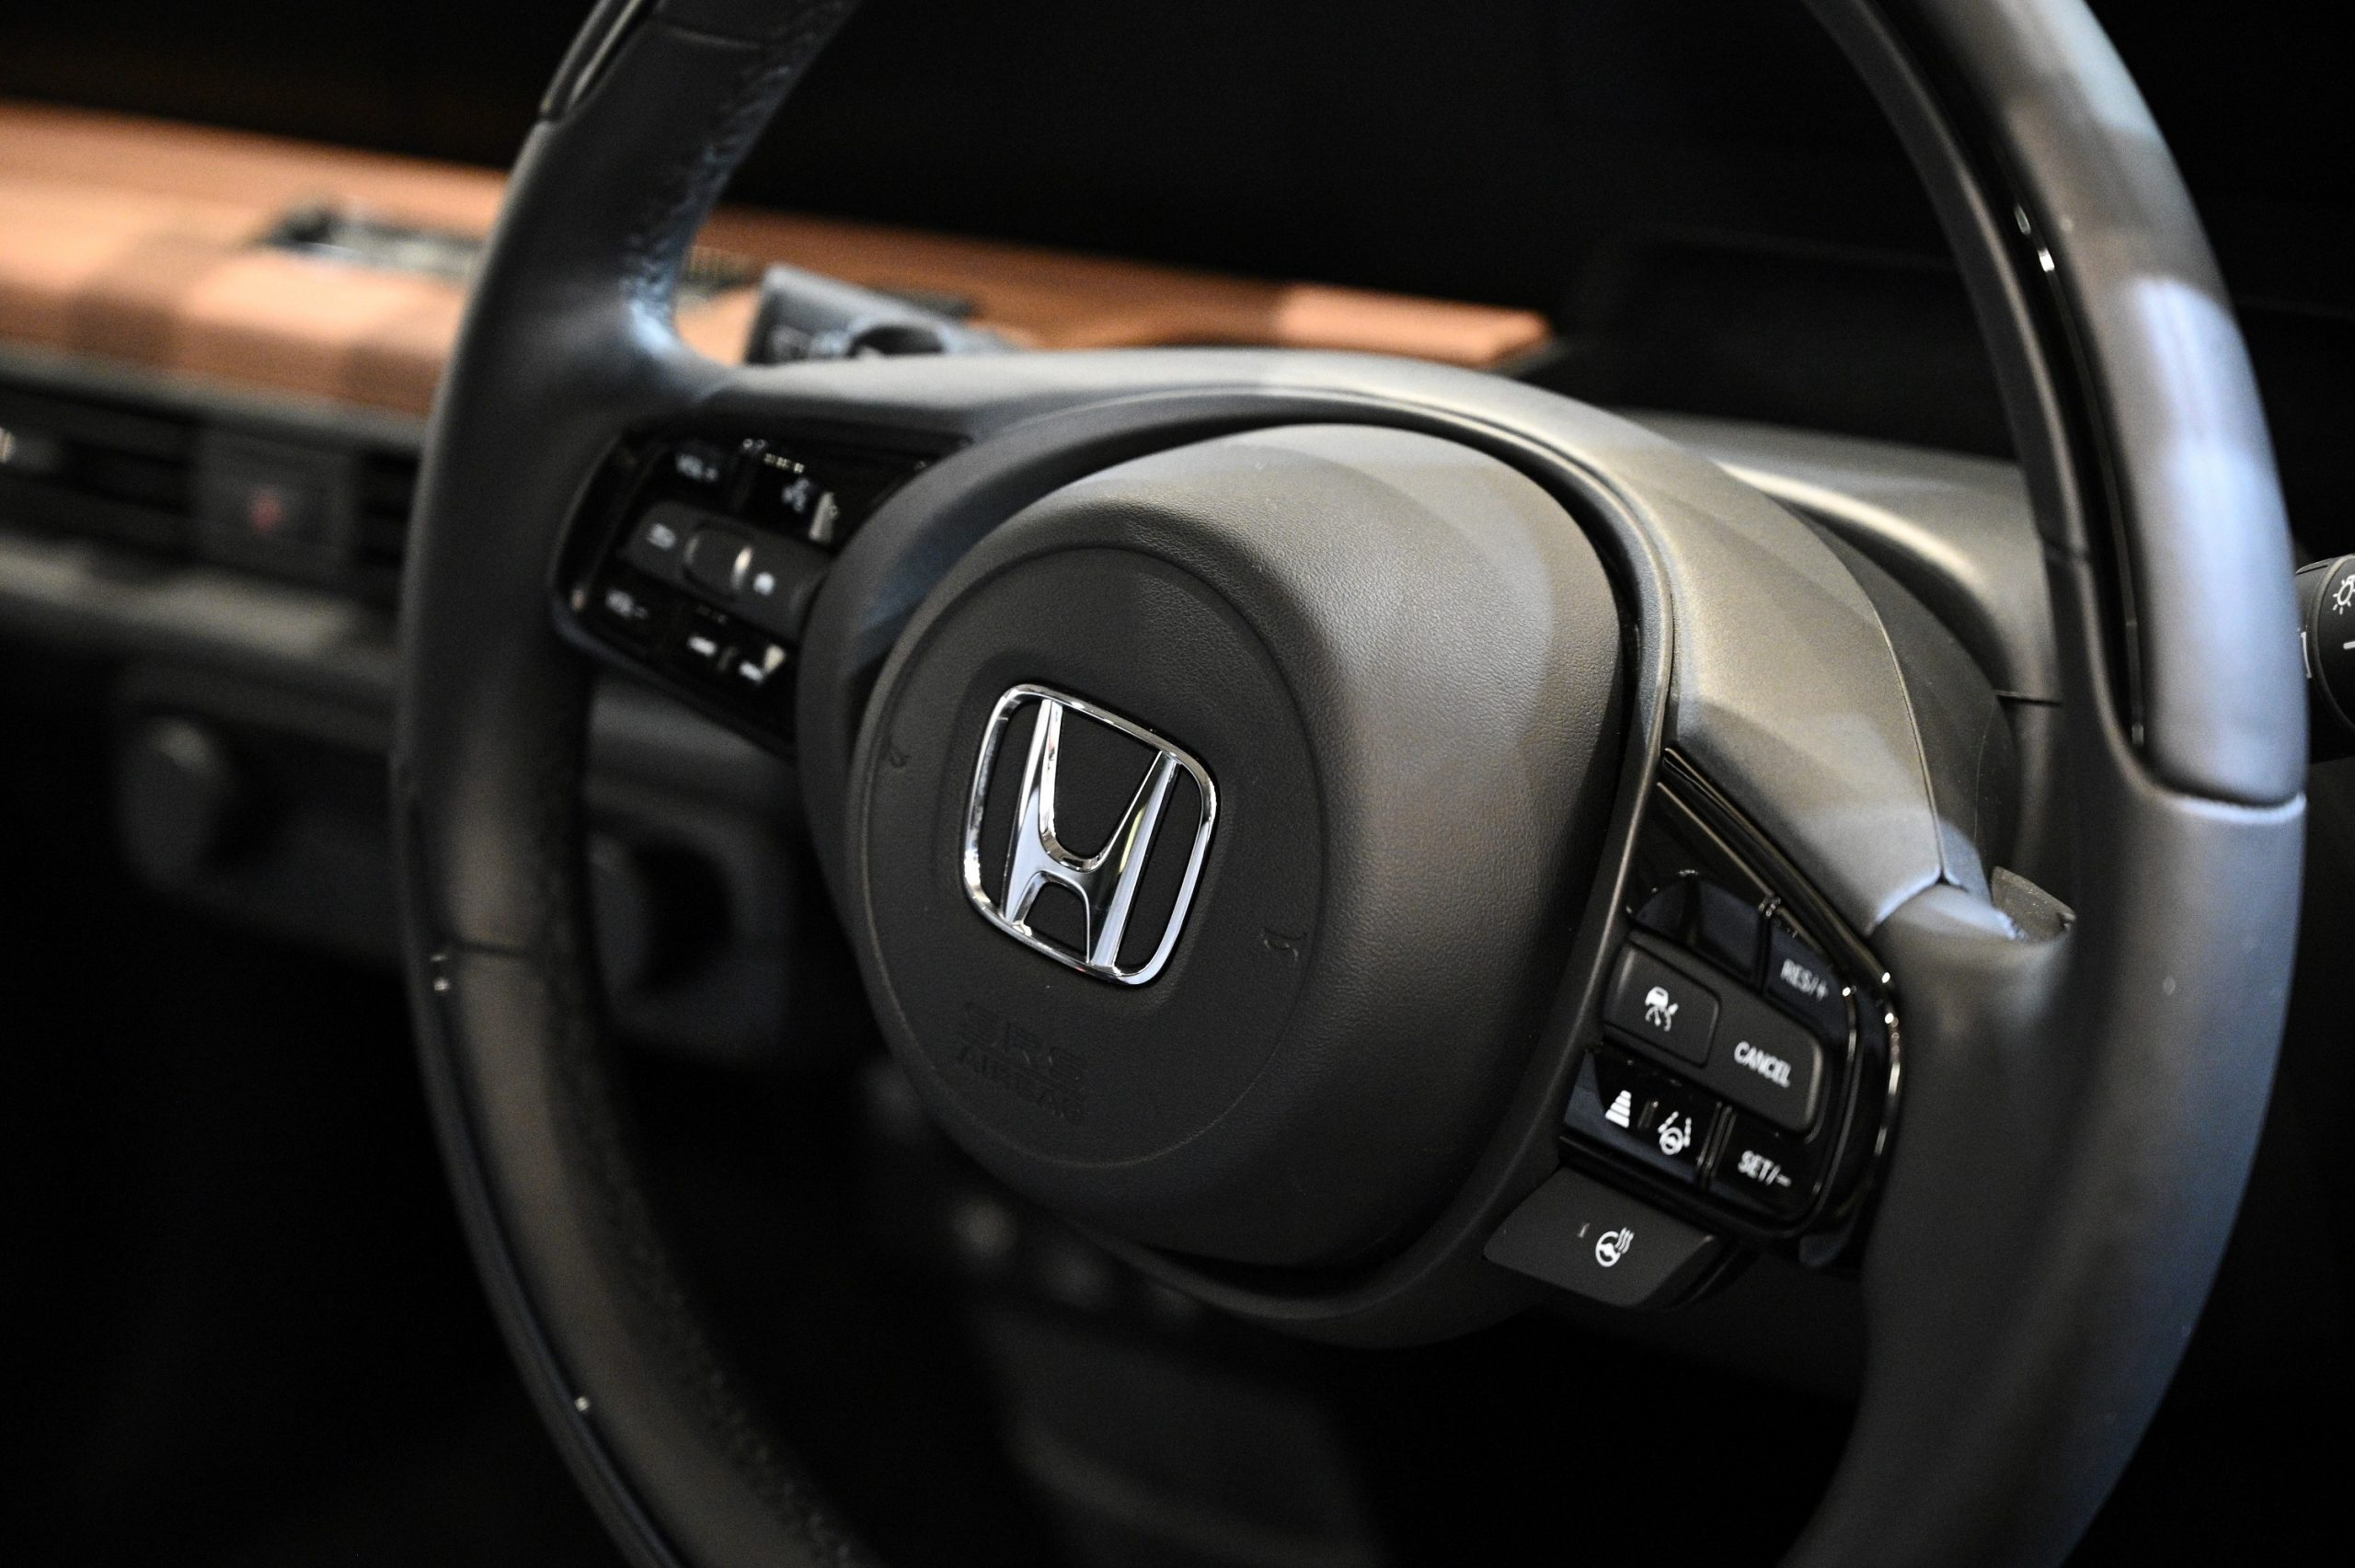 The steering wheel of the 2022 Honda Civic concept